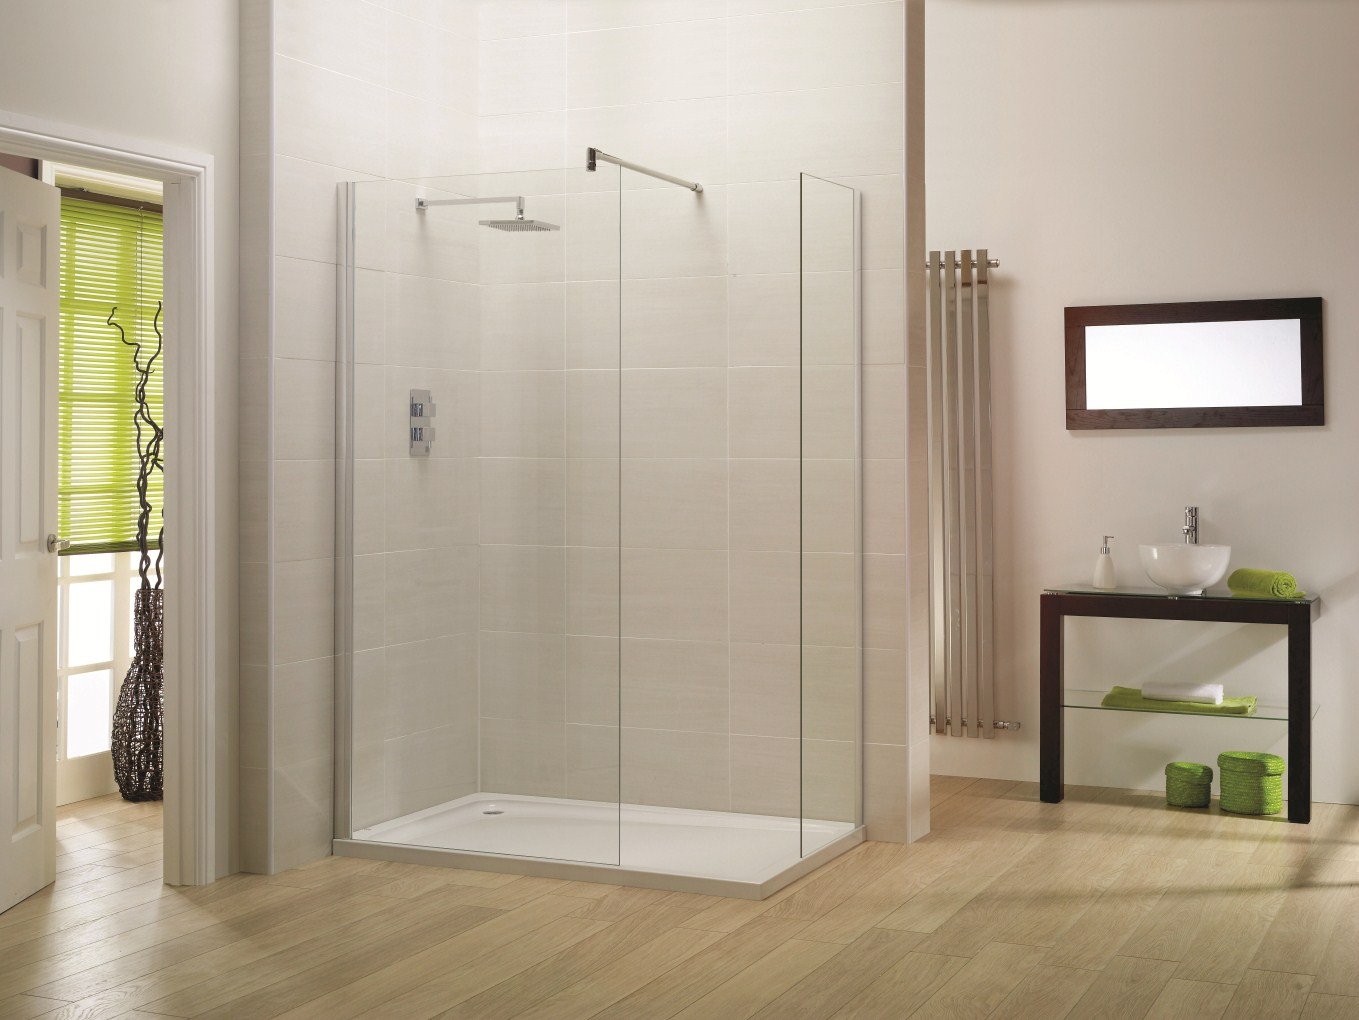 Clean Glass Panels and Modern Shower Faucet Used in Interesting Walk In Shower Designs for Wide Bathroom